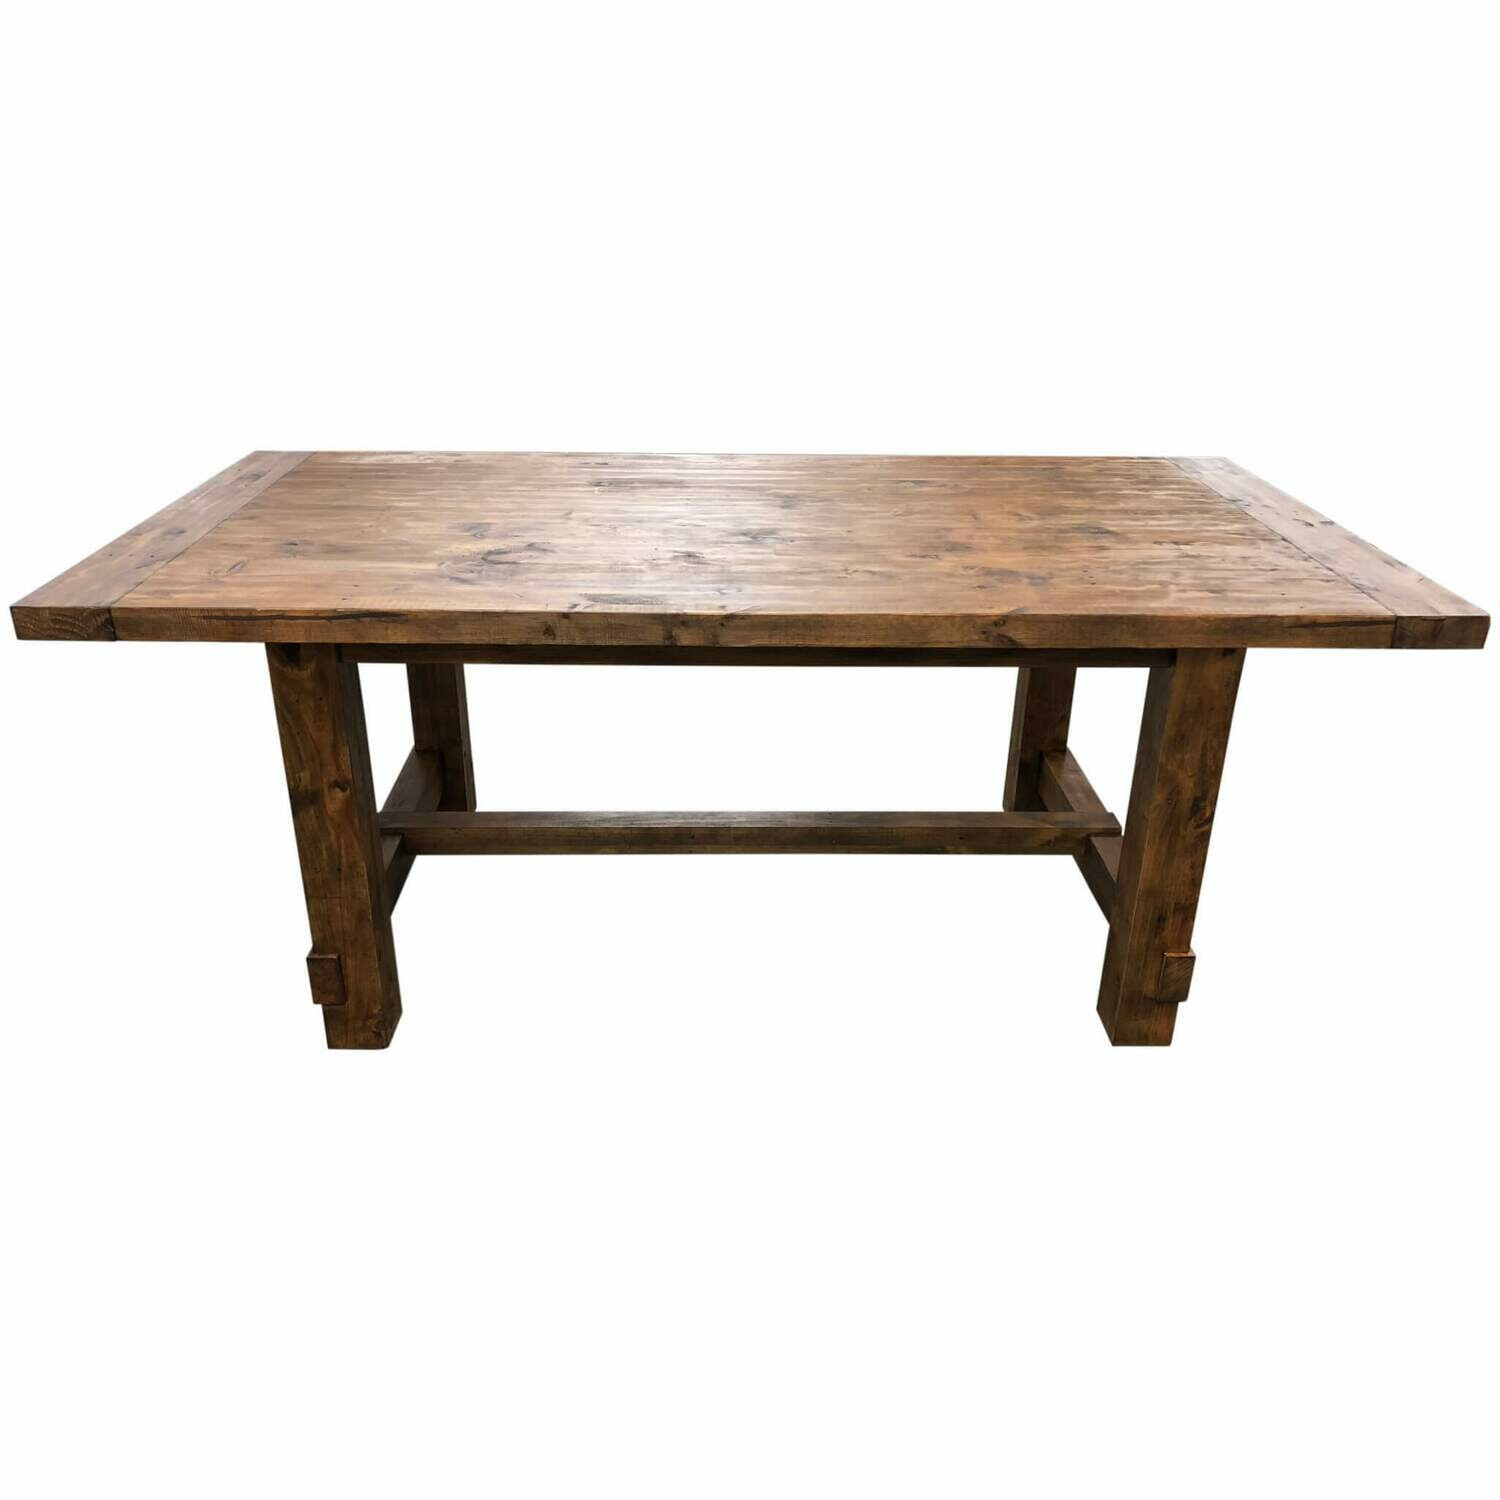 Industrial Dining Table 2M